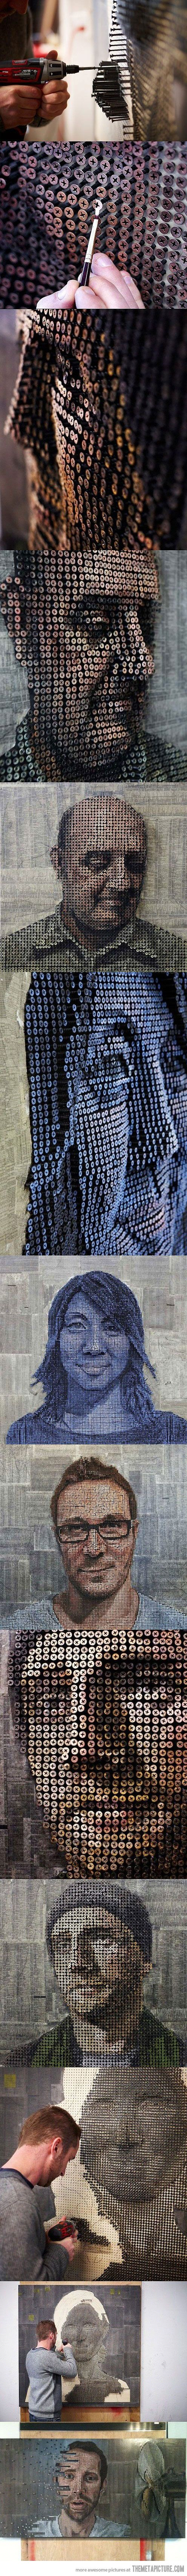 <3  3D portraits made from screws, by Andrew Myers.  Hardware and art are a marriage made in heaven for me!  Love the combo.